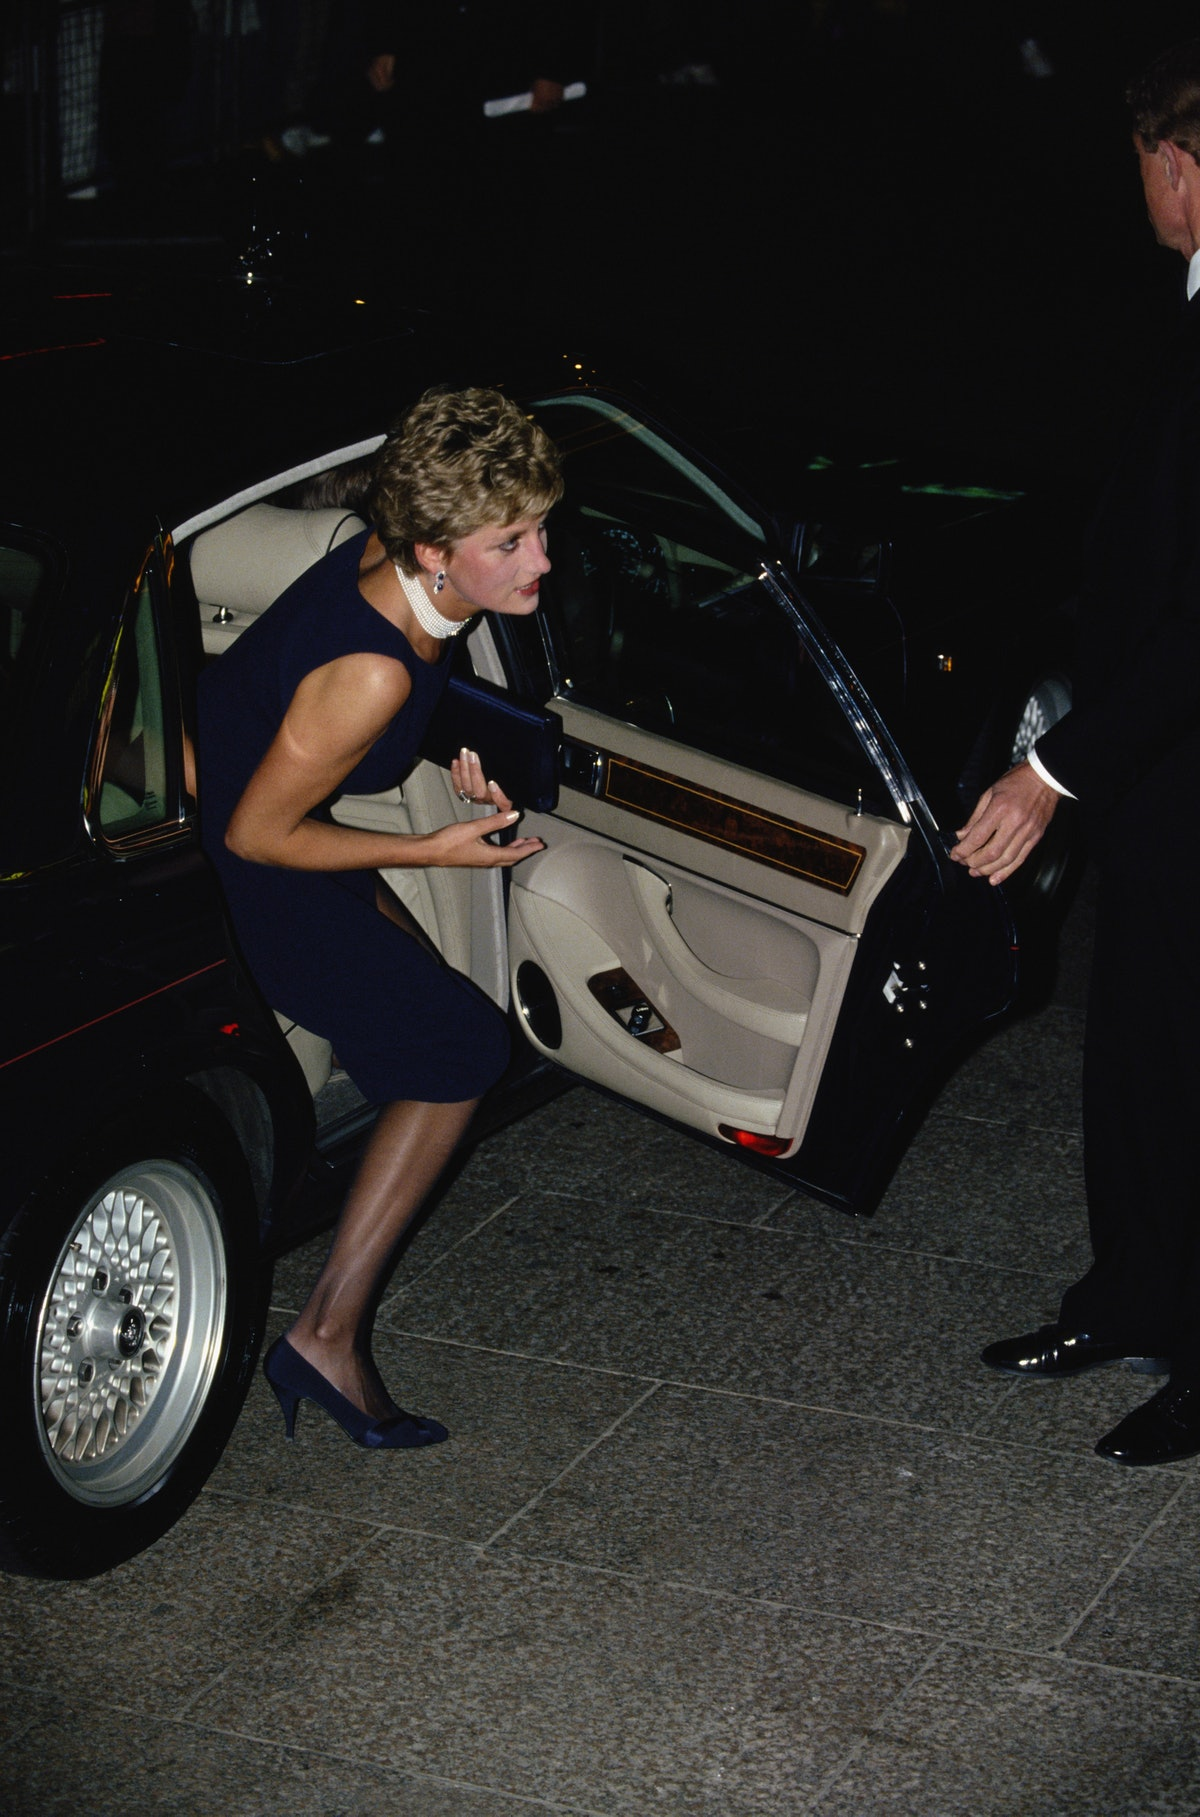 Diana's Arrival